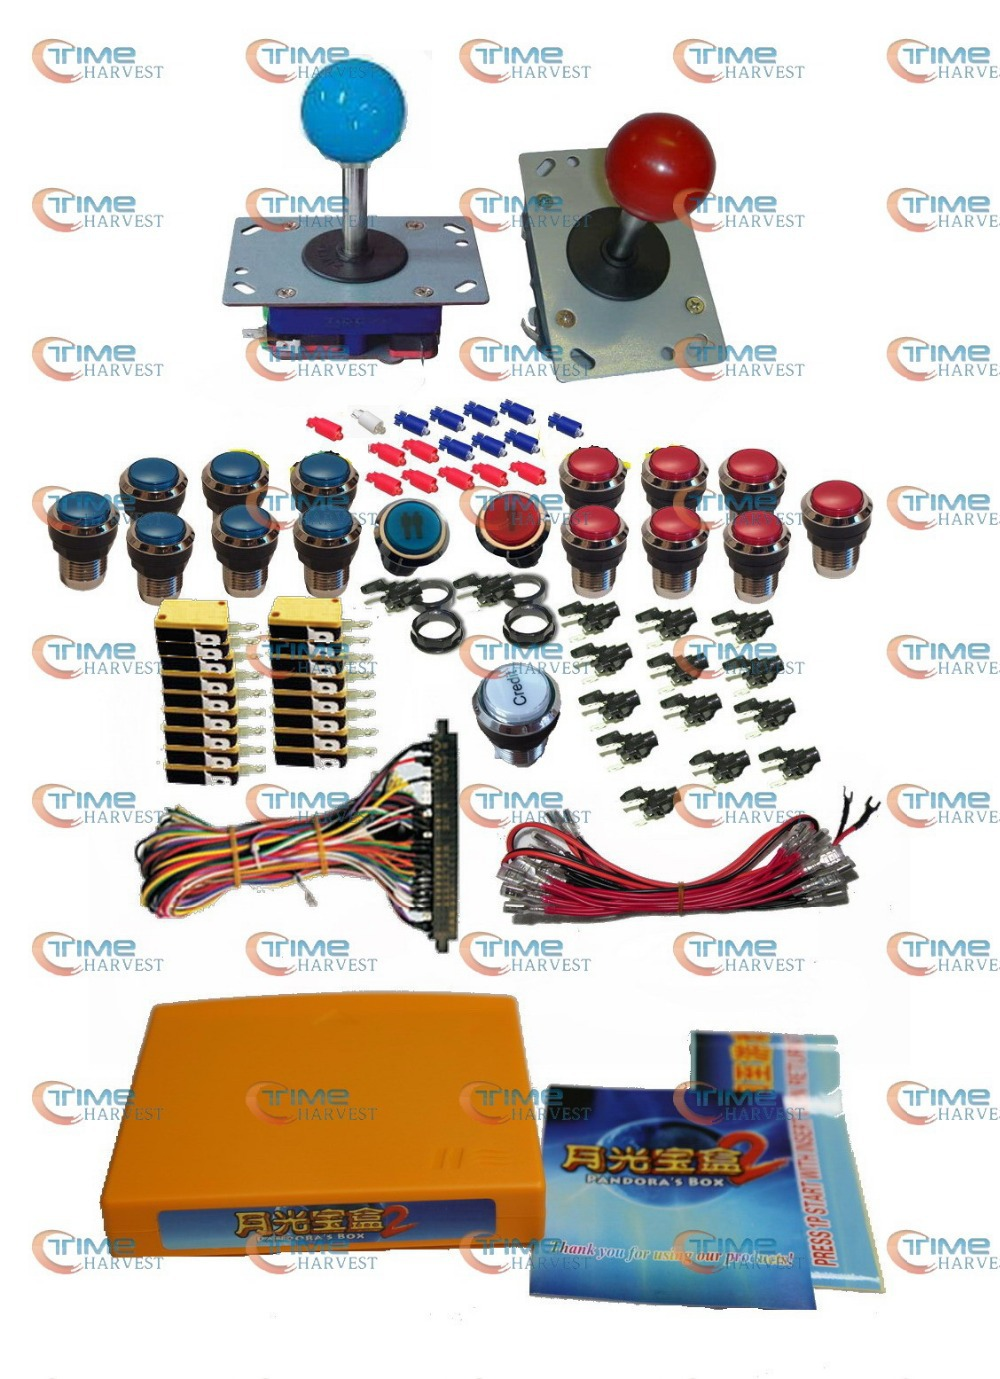 Arcade parts Bundles kit With 400 in 1 mulit game board Long shaft Joystick Silver illuminated button Microswitch Jamma Harness twister family board game that ties you up in knots